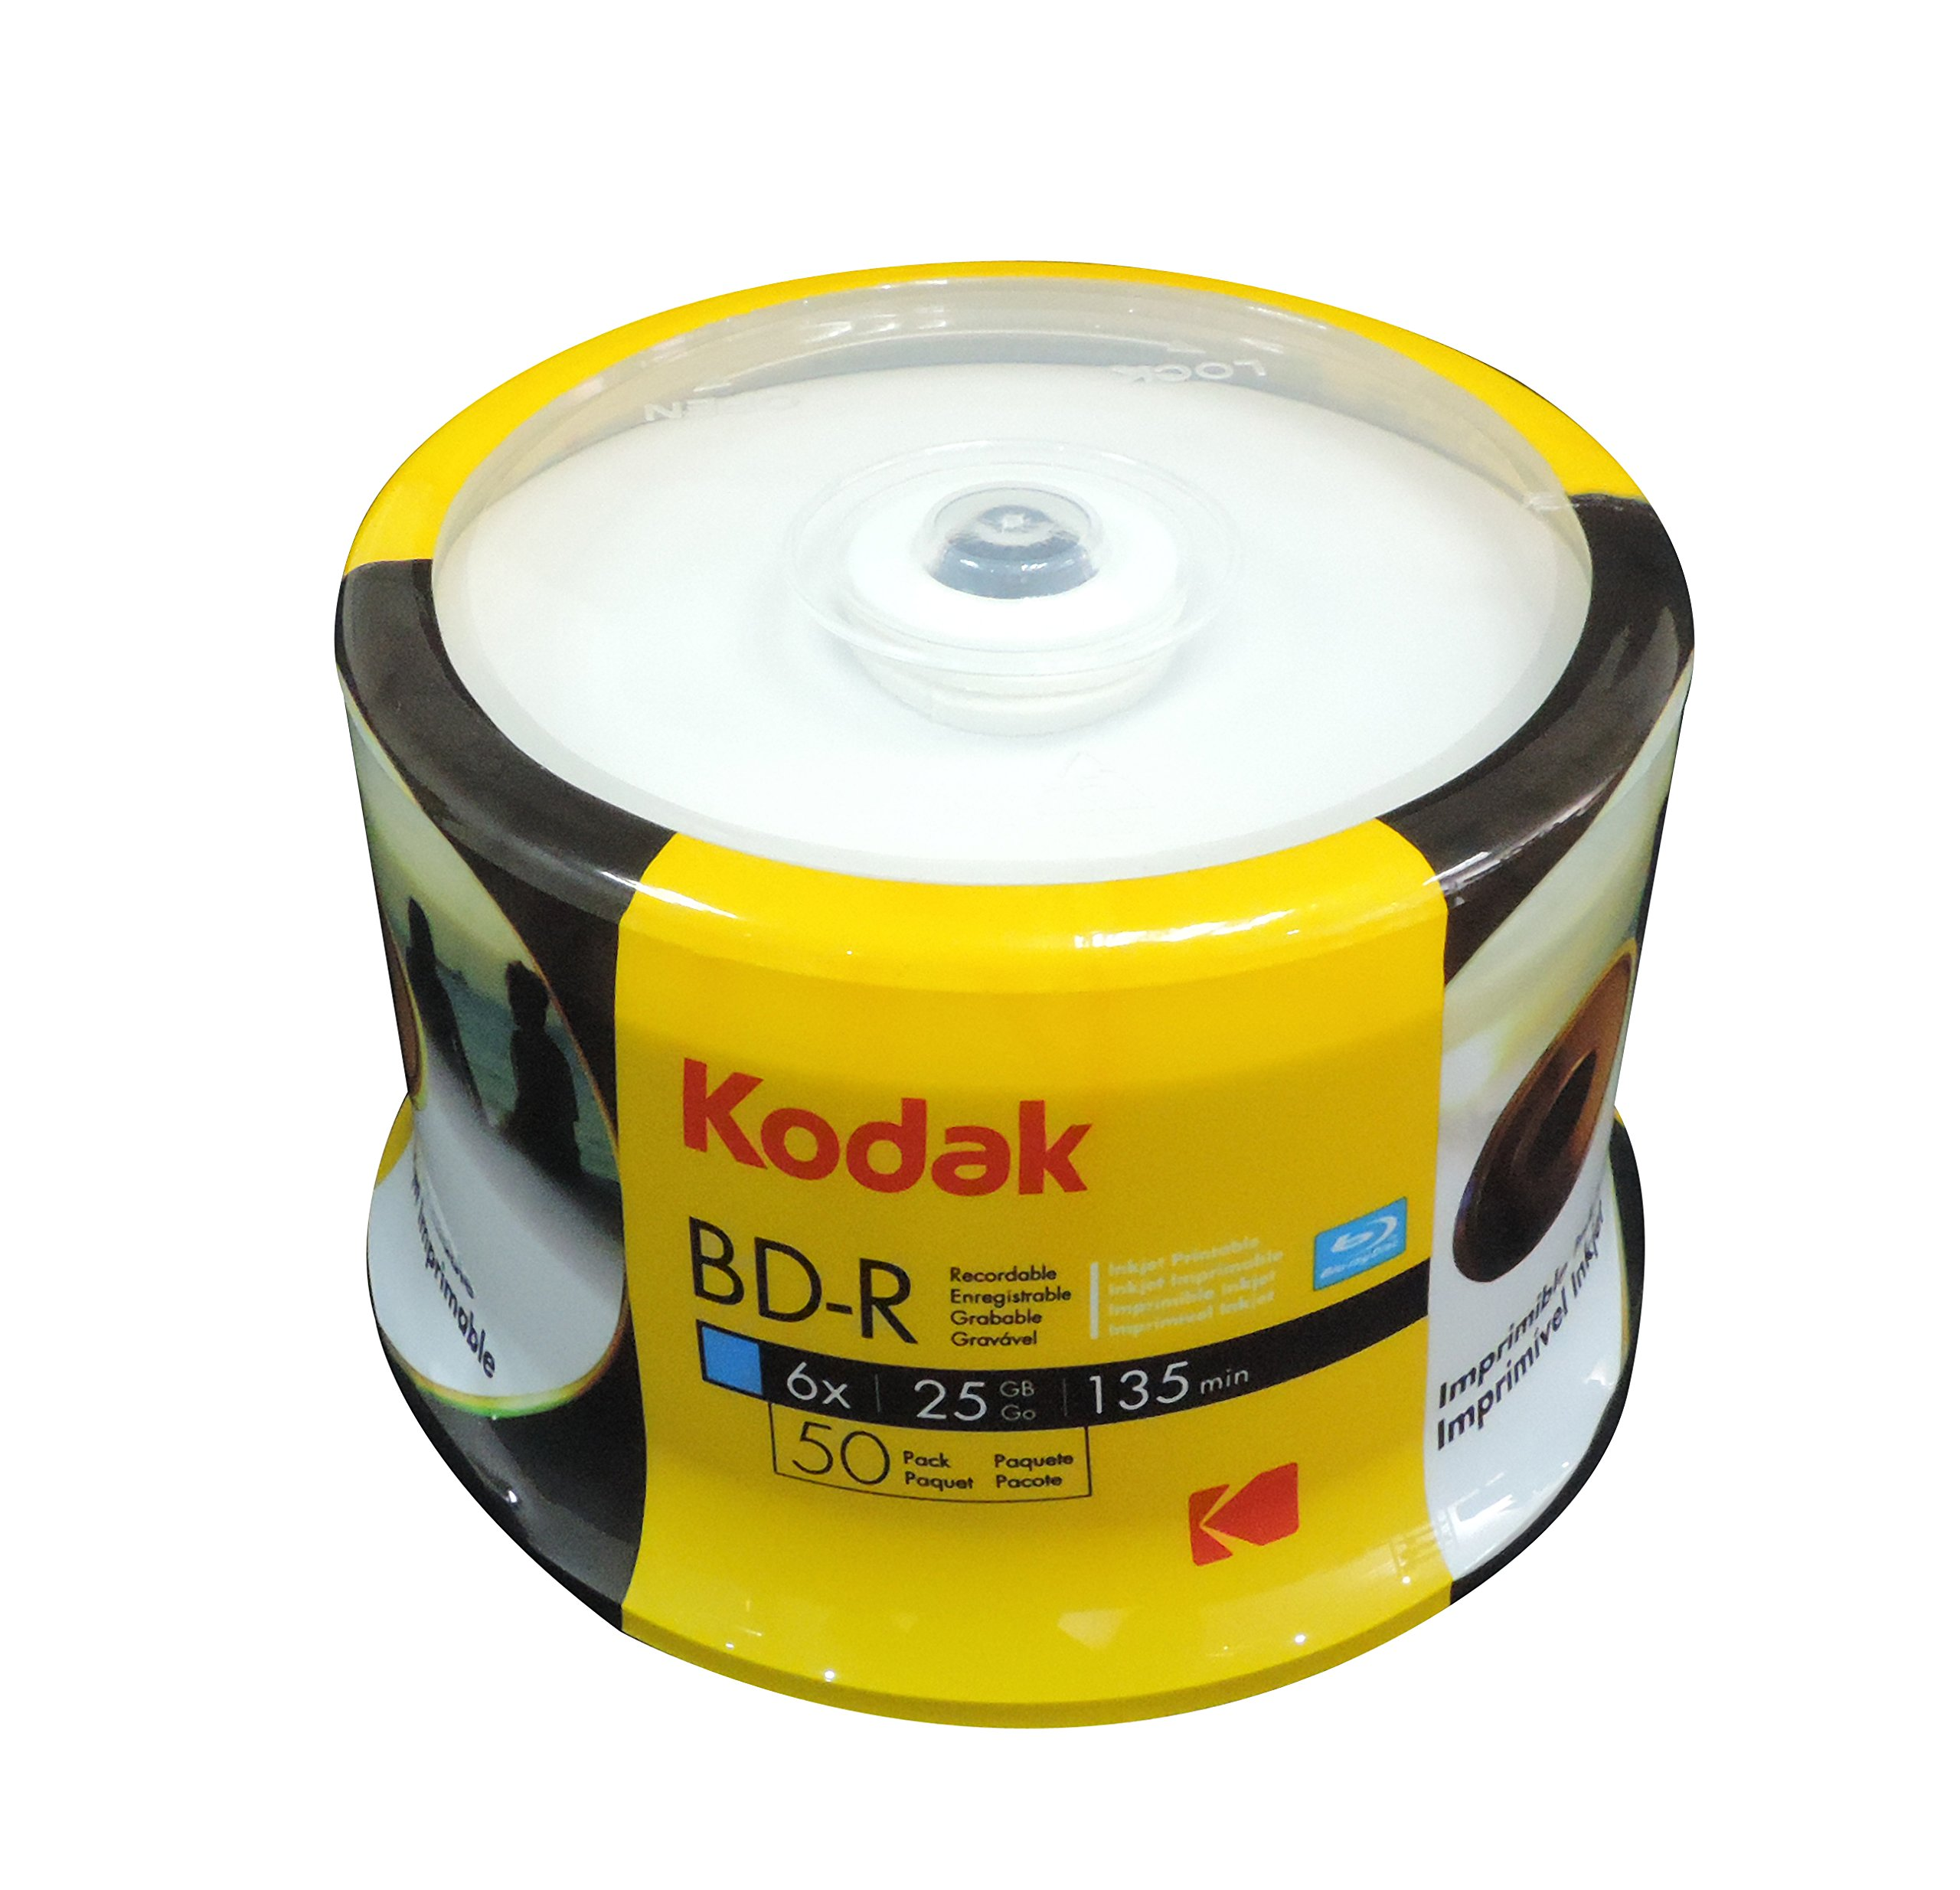 KODAK BD-R 6x 25GB 50-Pack Cakebox, White Inkjet Printable